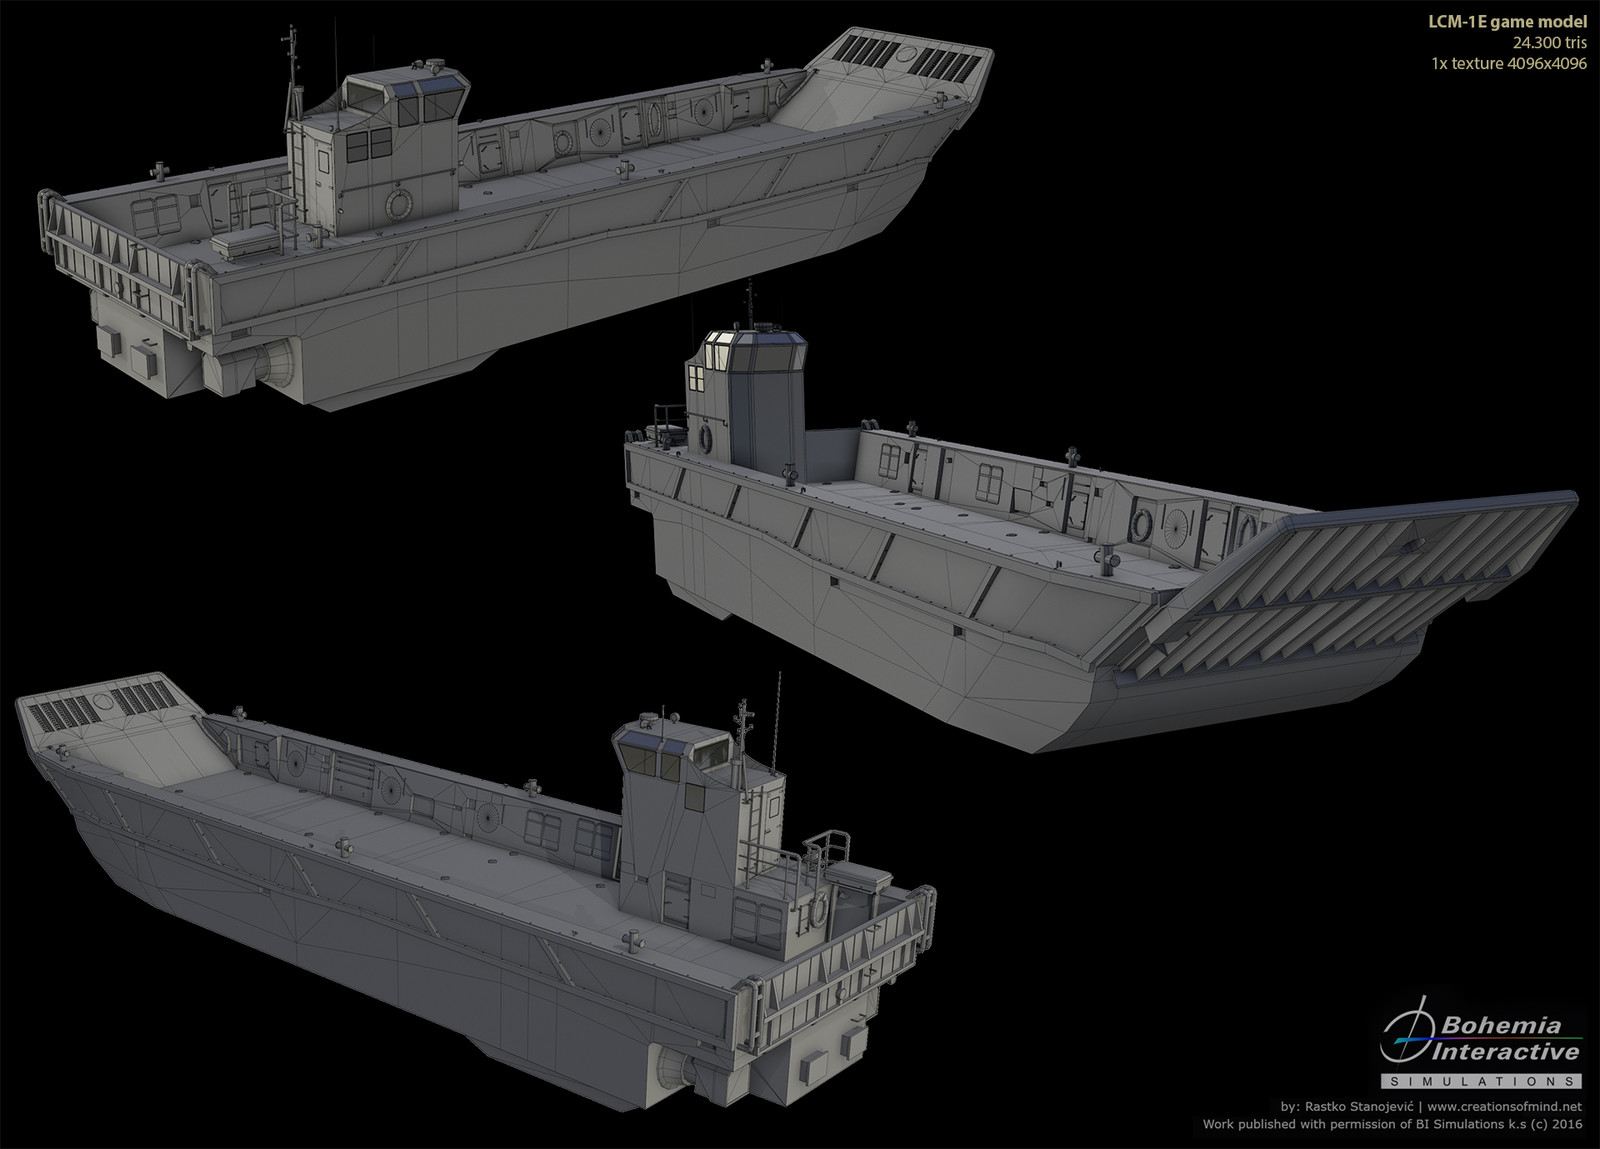 LCM-1e Landing Craft | real time render wireframe |